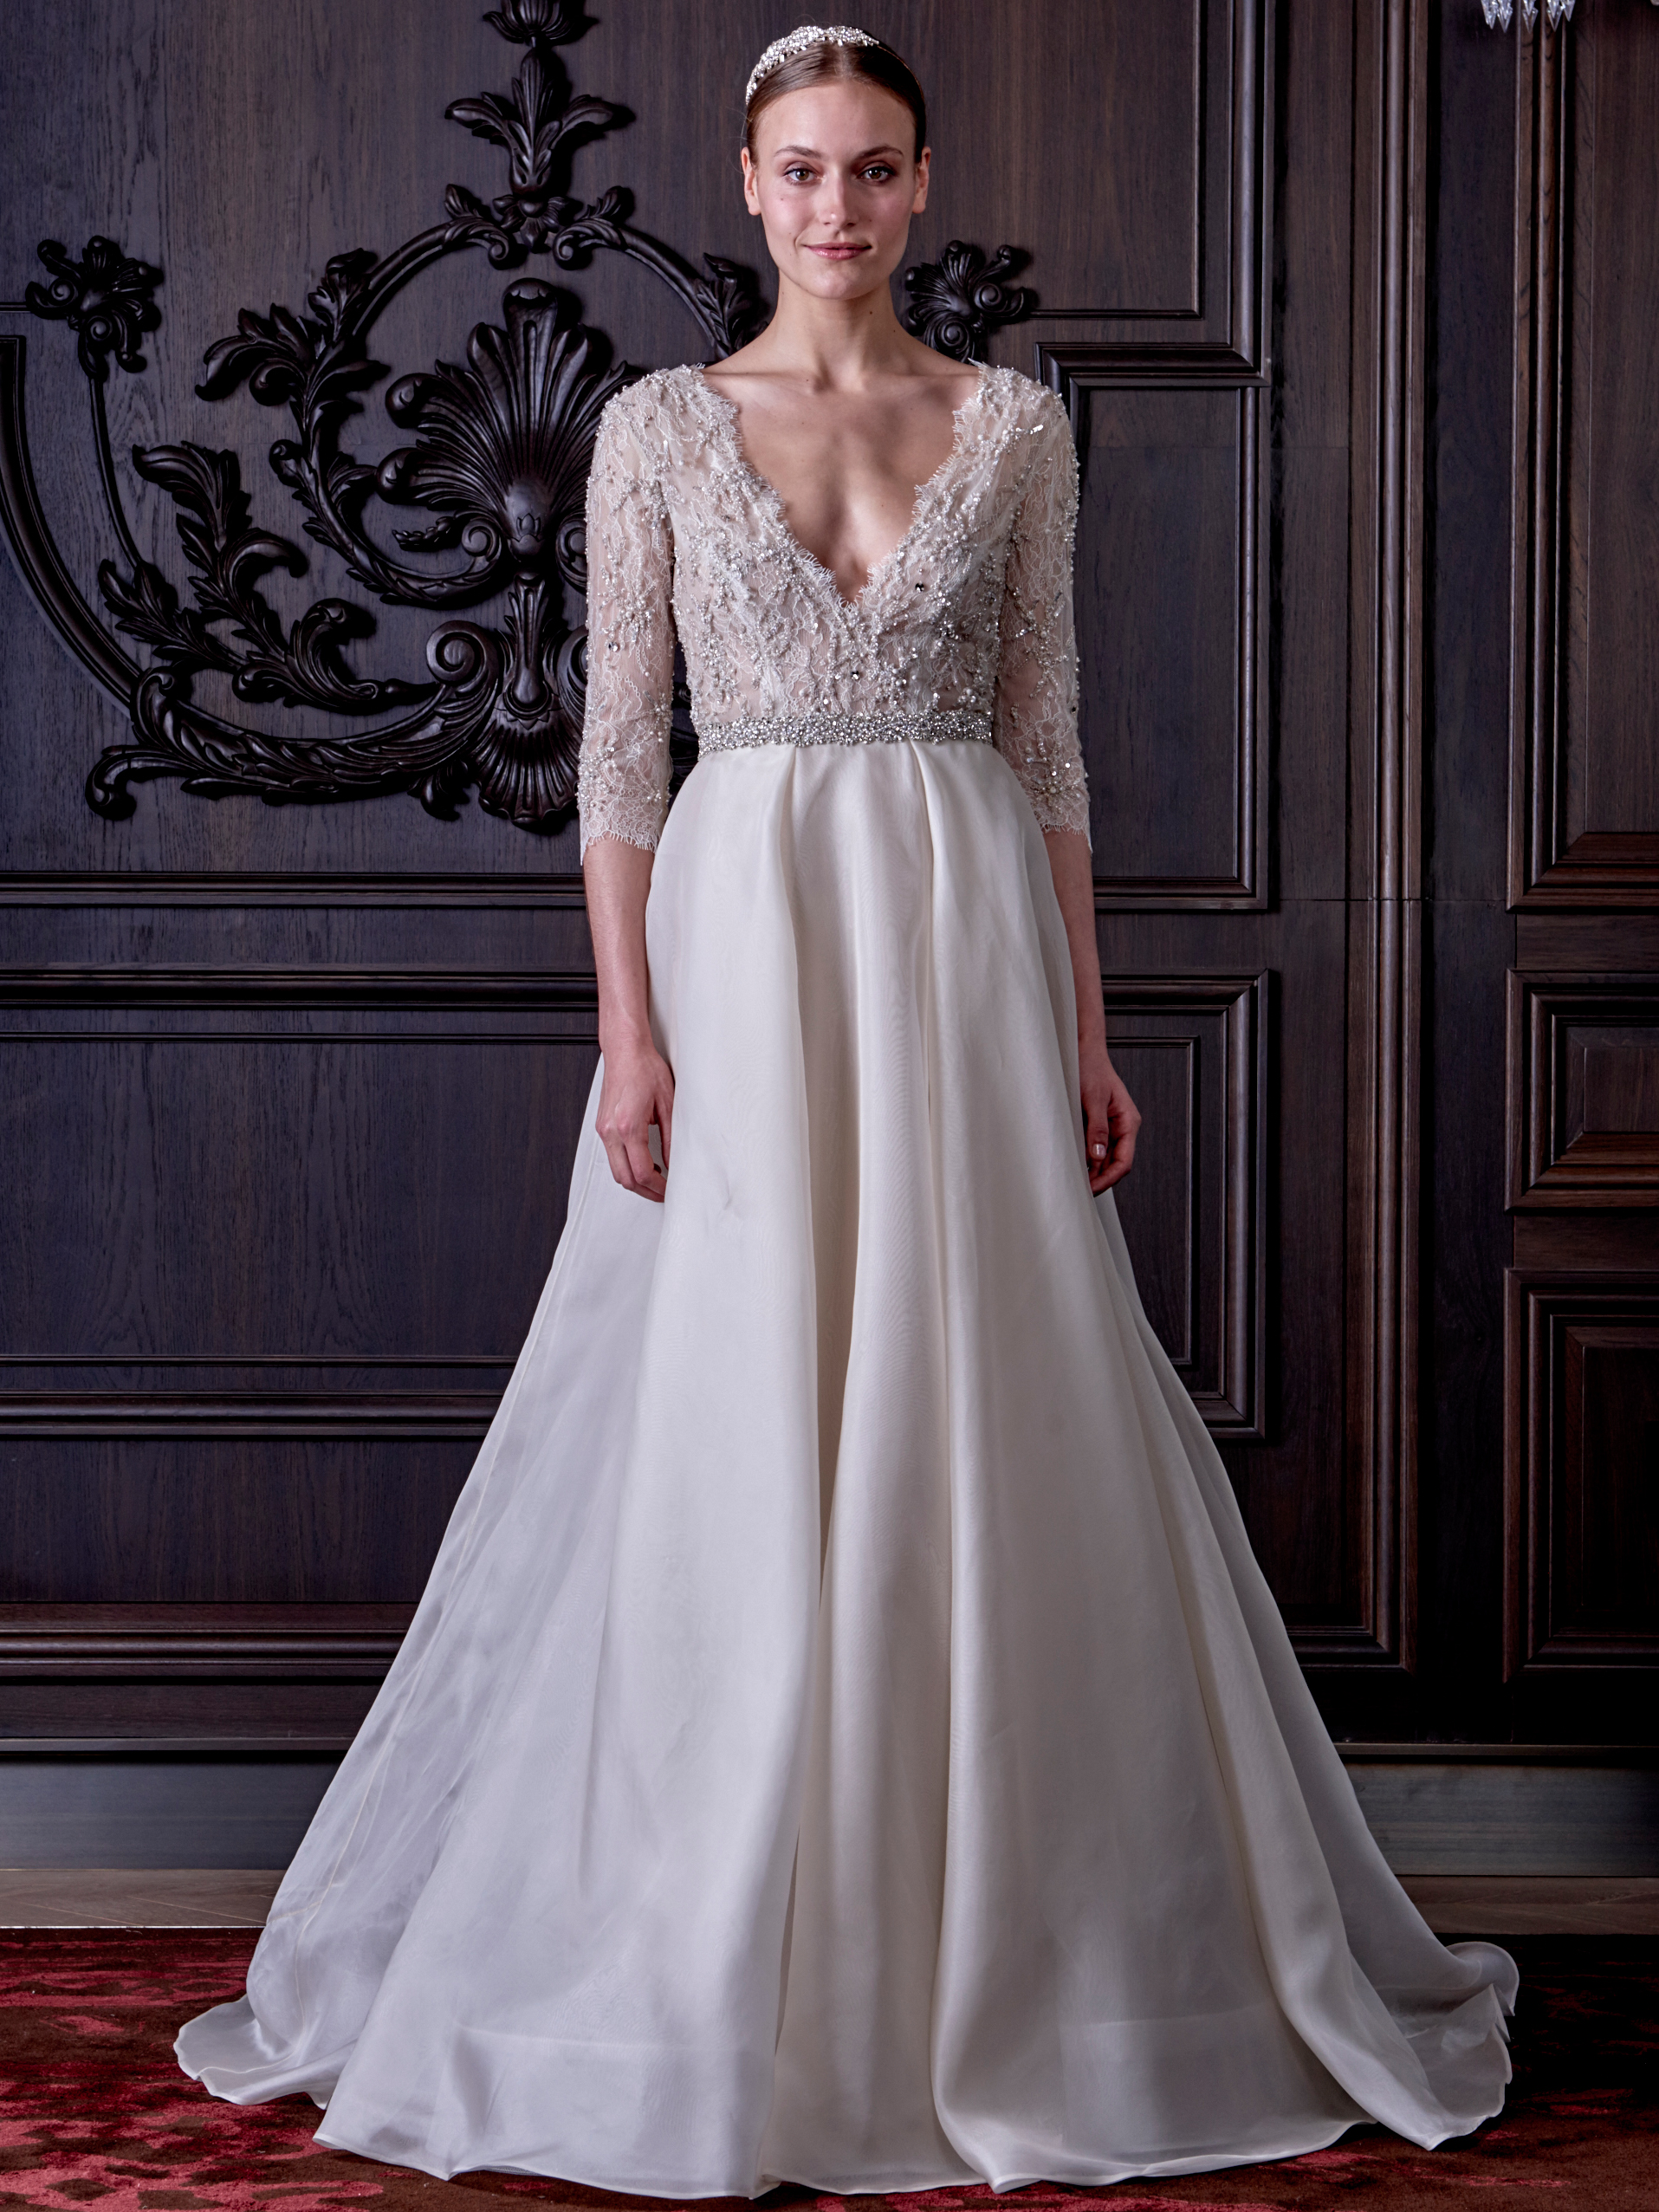 Monique Lhuilliers New Wedding Dress Collection Is Both Naughty And ...